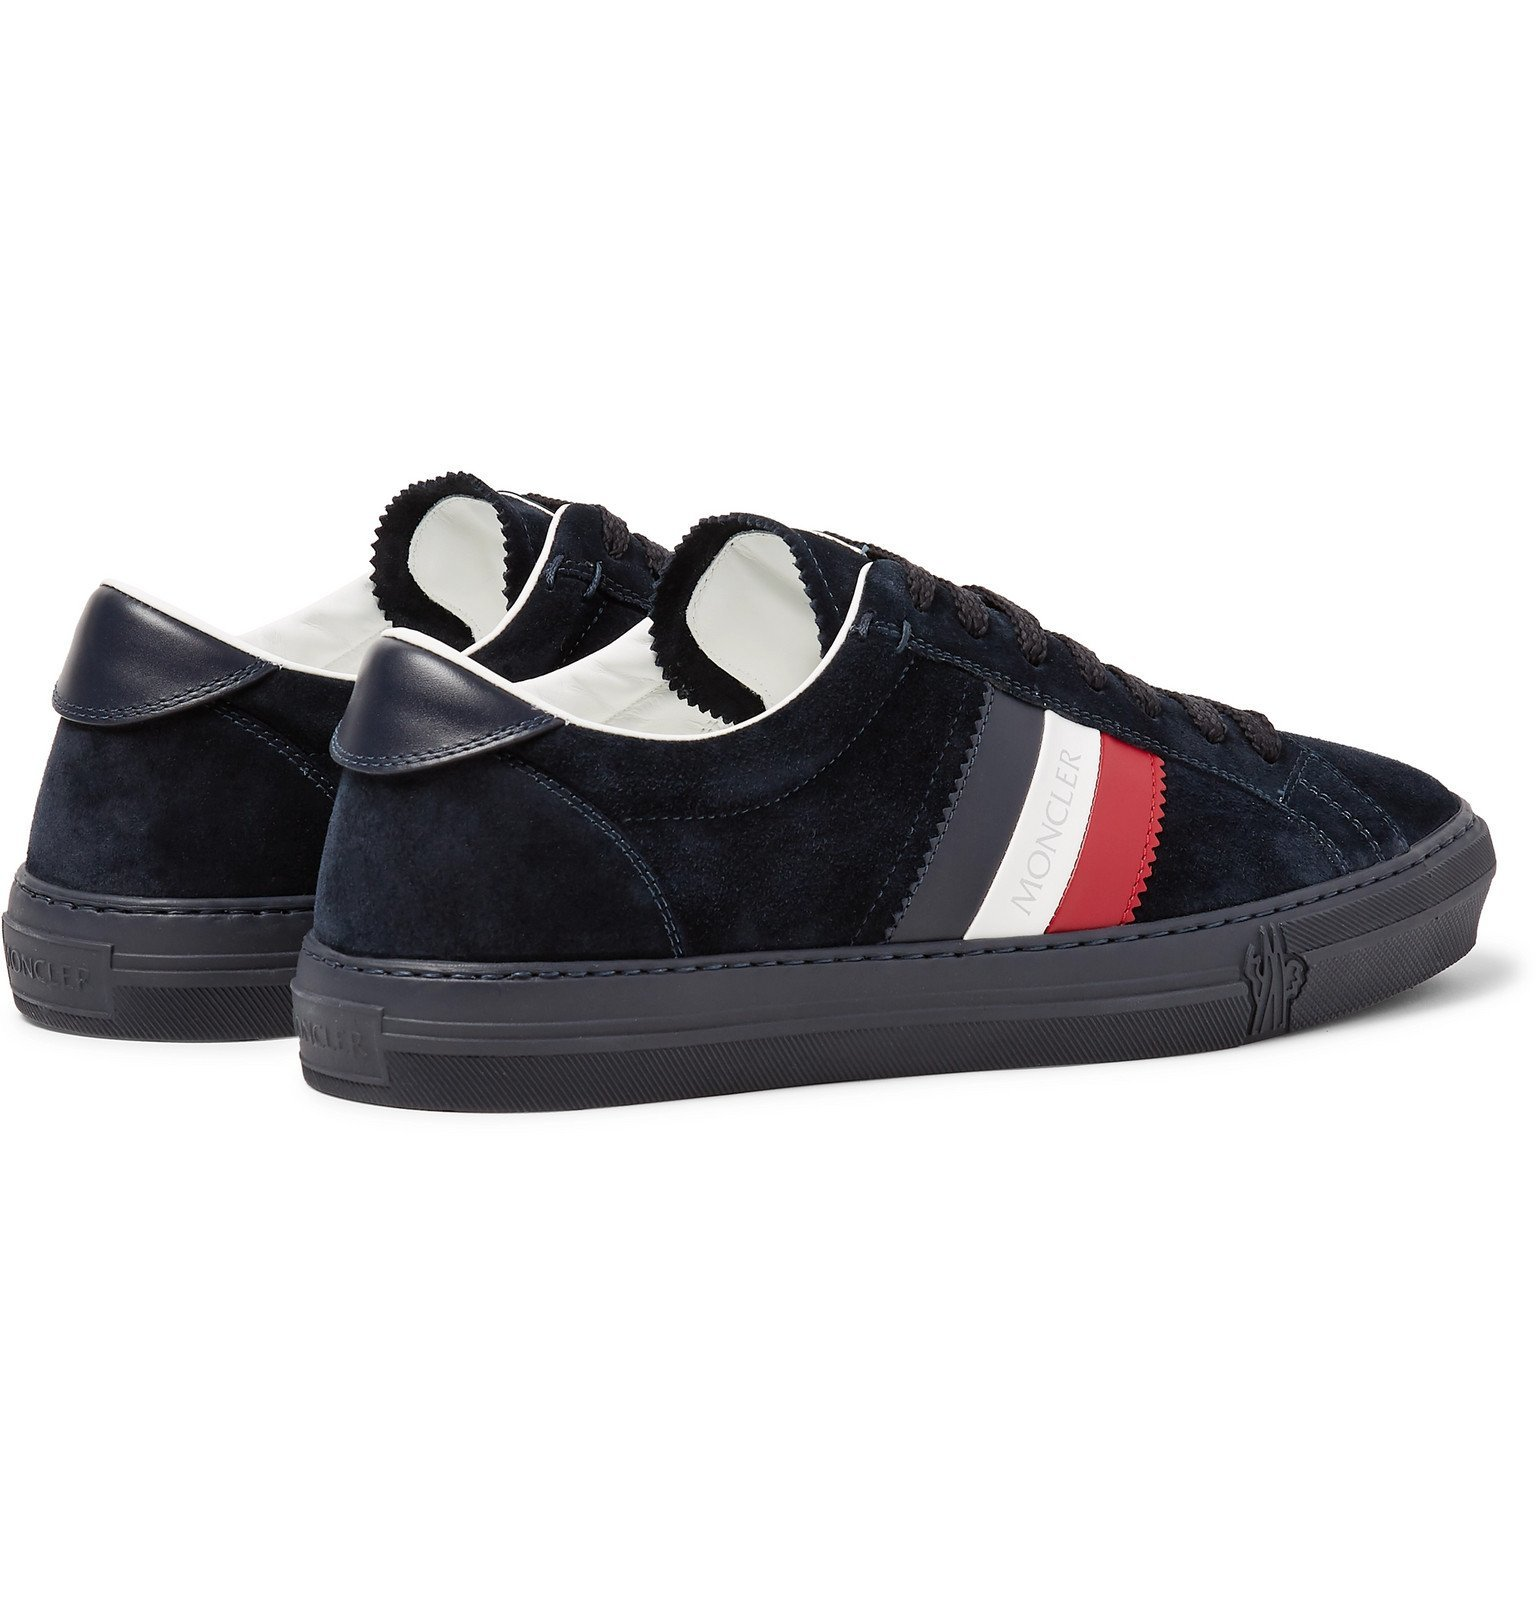 Moncler - New Monaco Leather and Suede Sneakers - Blue